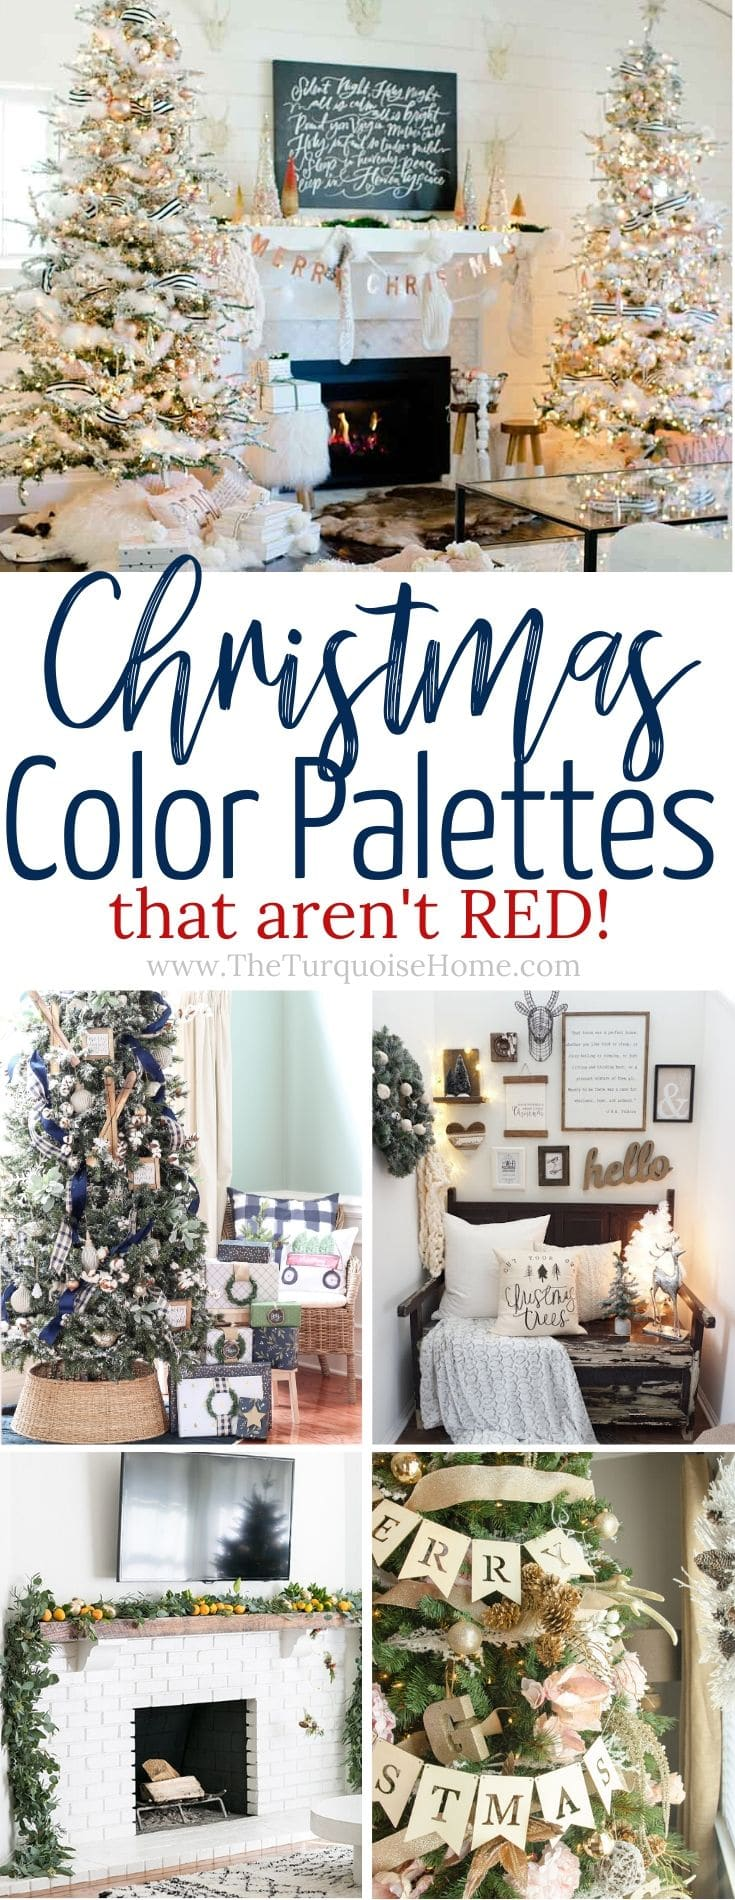 Decorate with these gorgeous Christmas color palettes that aren't red!